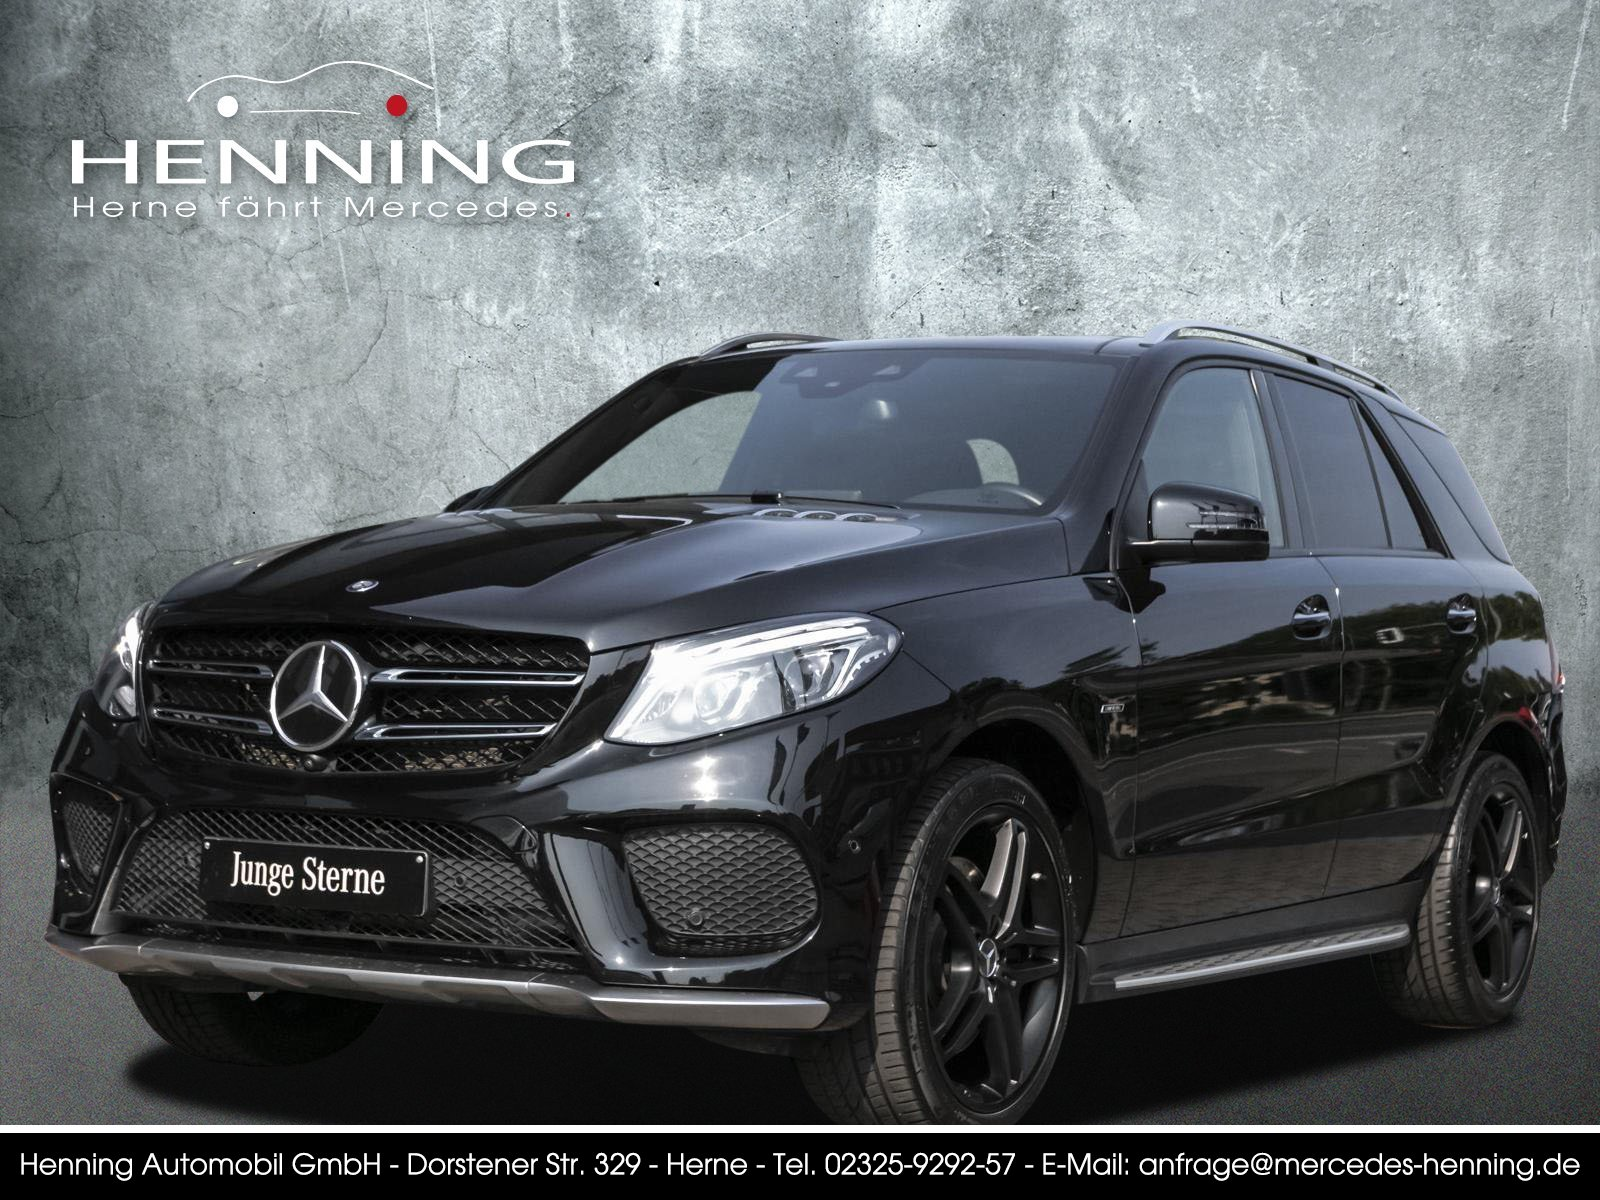 Mercedes-Benz GLE 450 AMG 4M Pano Standhzg. Distronic Memory, Jahr 2016, Benzin